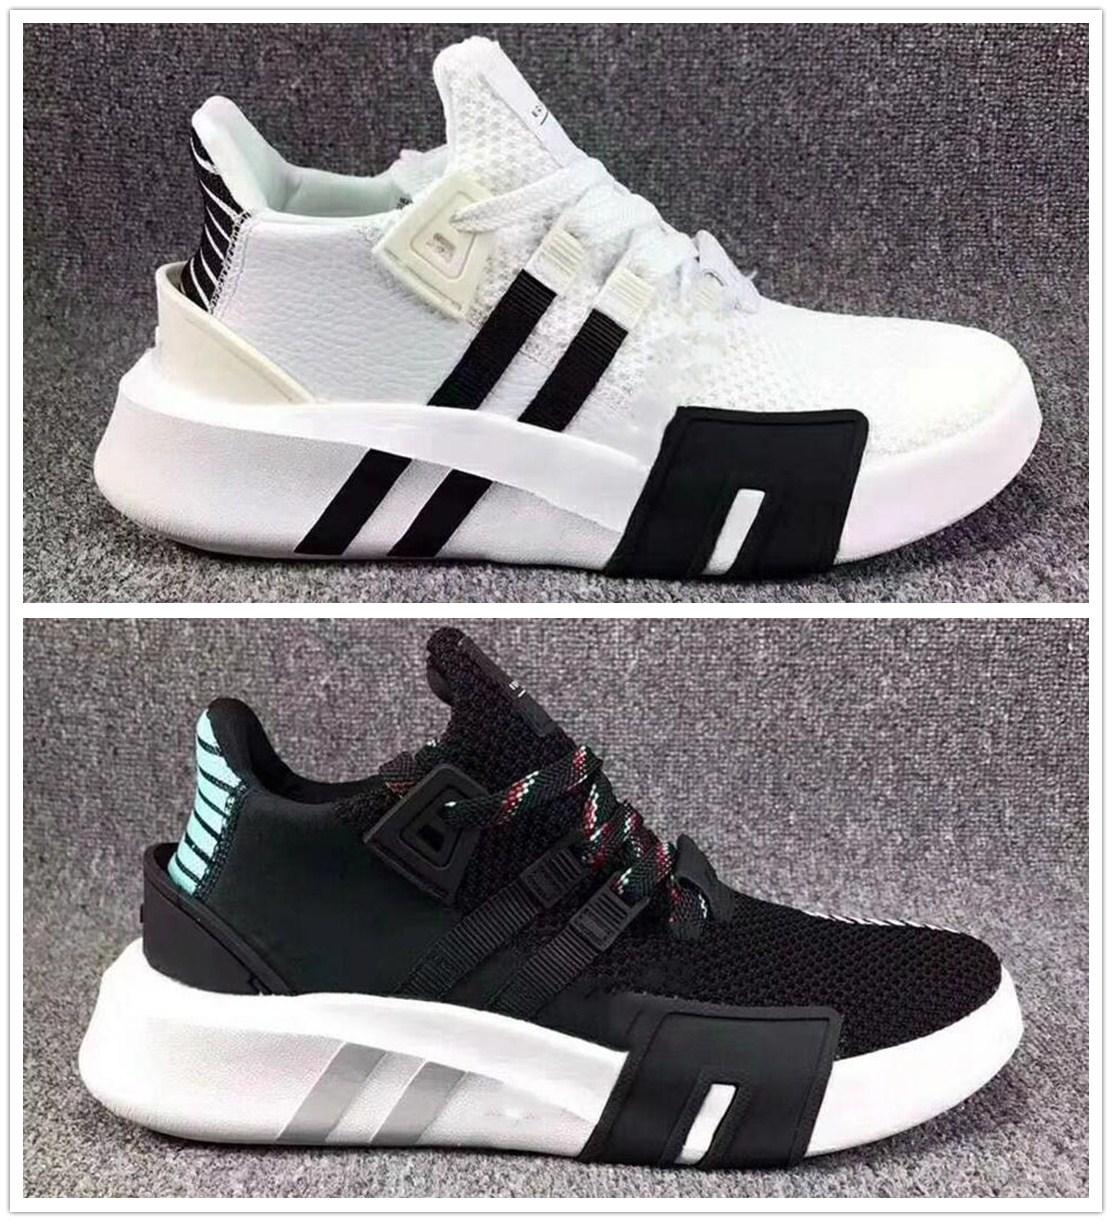 4b8cf476d 2017 Hot EQT Support ADV Primeknit Hot Sale High Quality Casual Shoes For  Men Casual Shoes Womens Size 40 44 Wedges Shoes Black Shoes From Gazelle